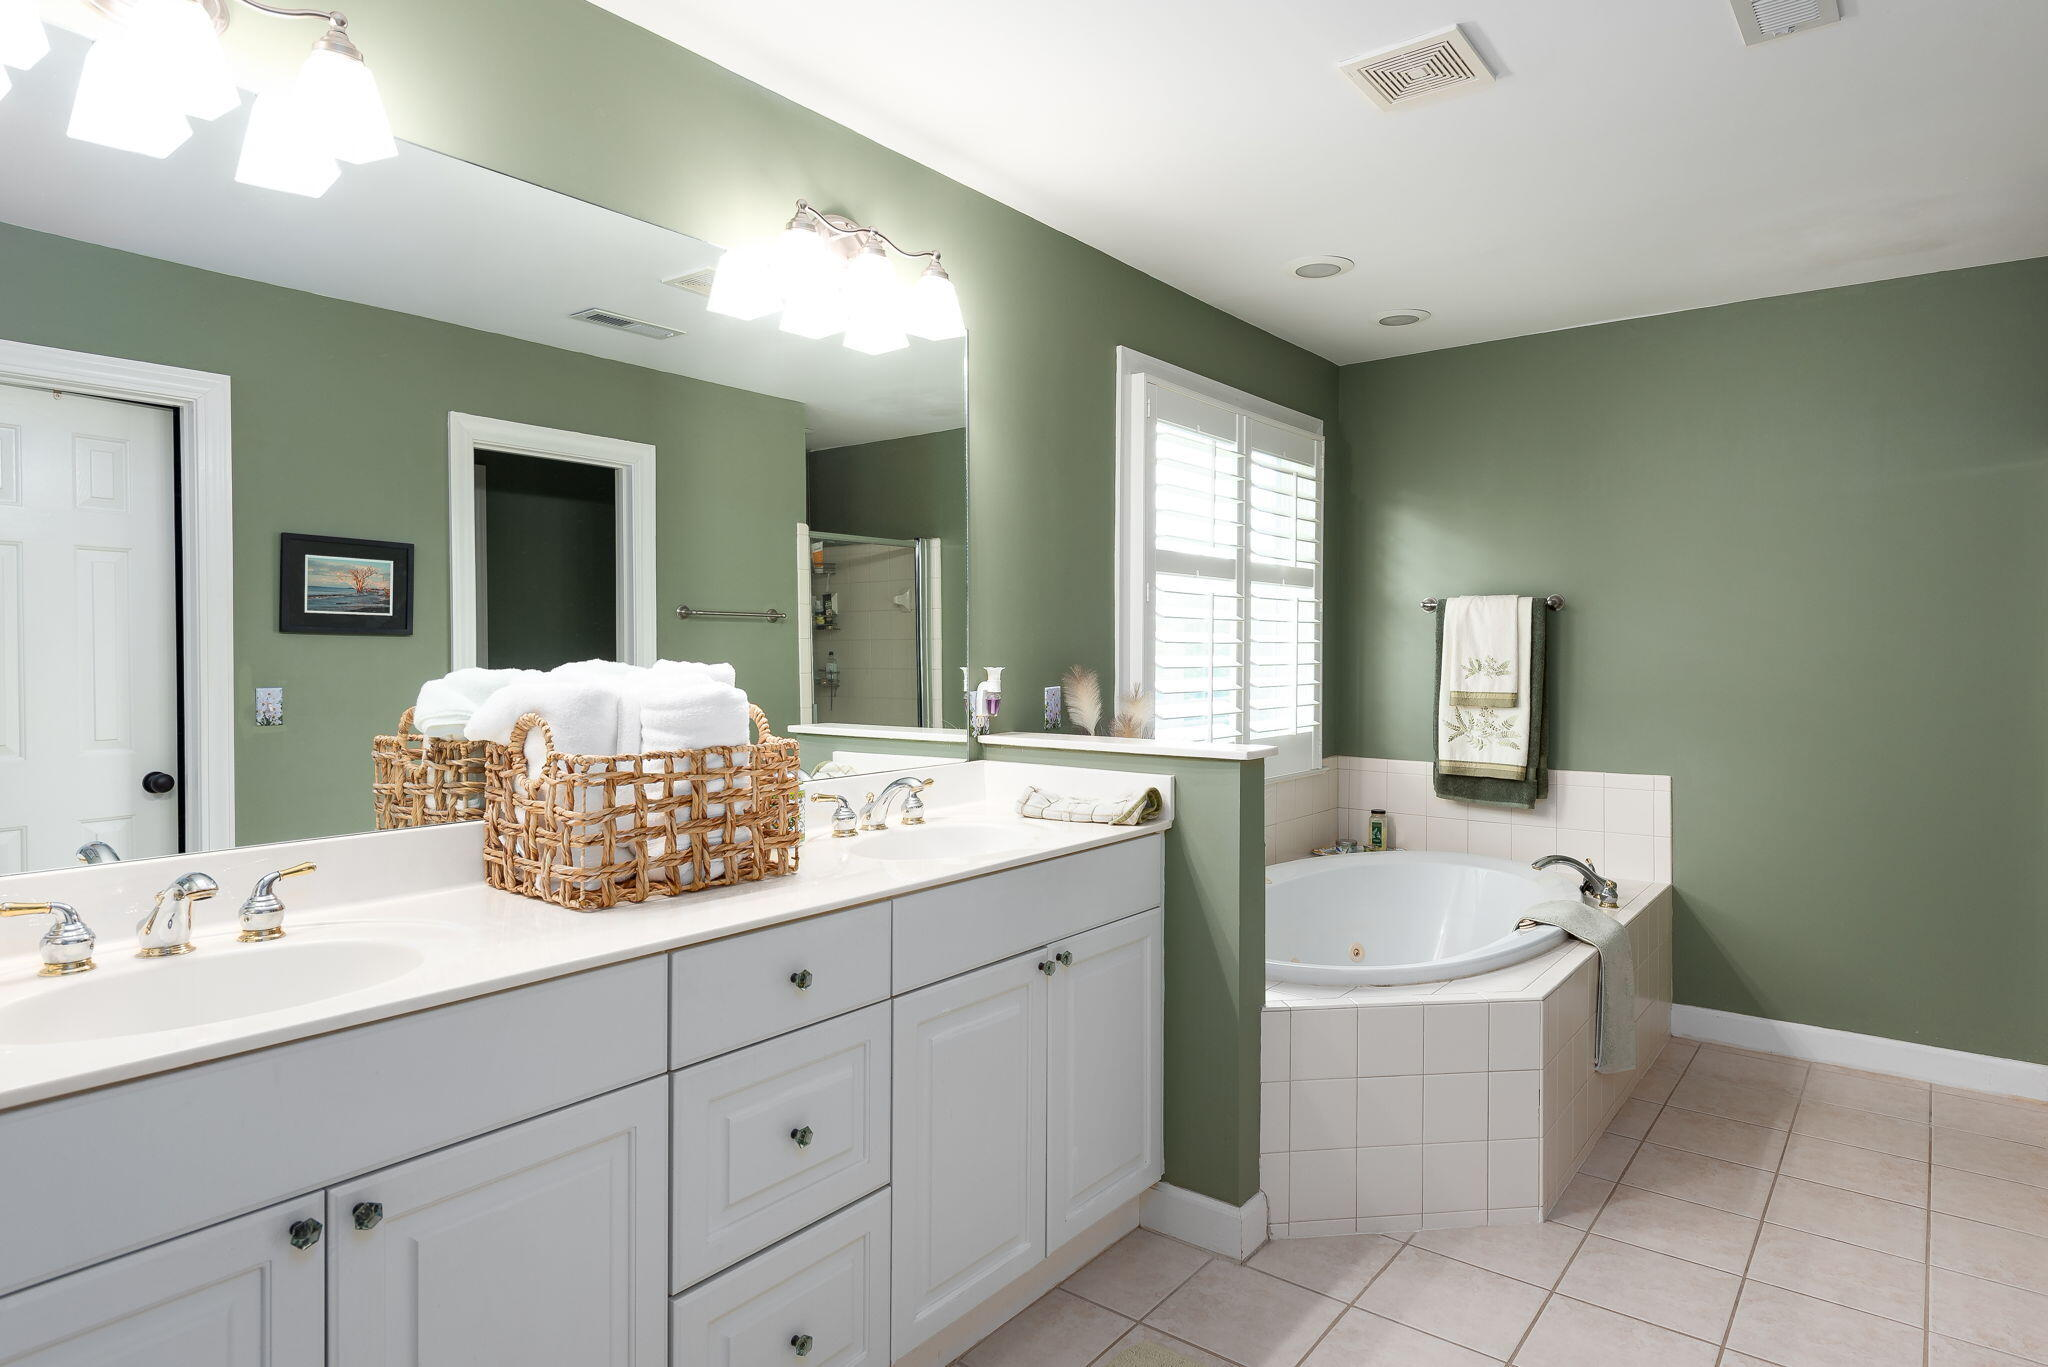 Rivertowne On The Wando Homes For Sale - 2301 Hartfords Bluff, Mount Pleasant, SC - 23